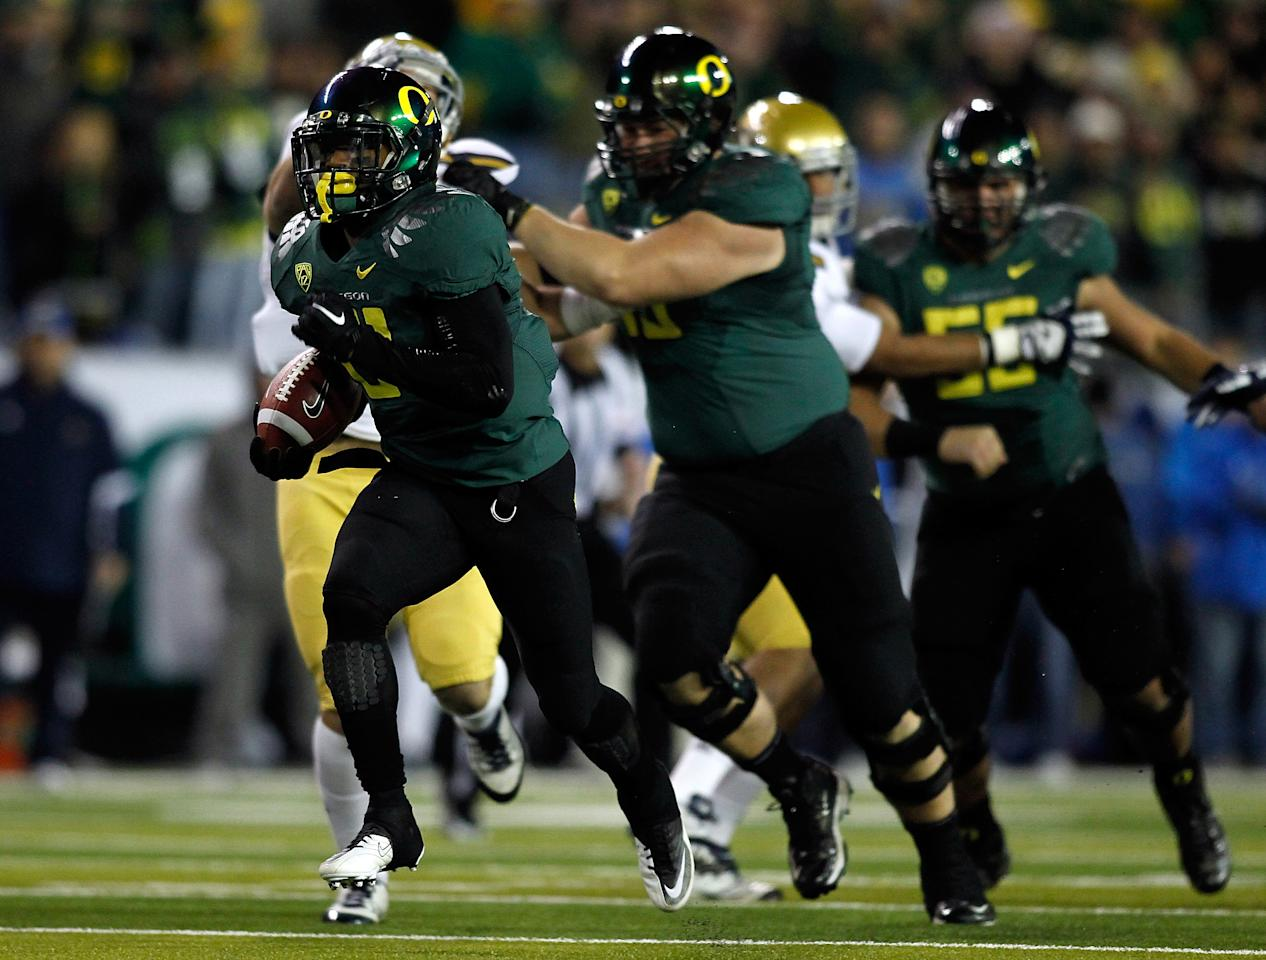 EUGENE, OR - DECEMBER 02:  LaMichael James #21 of the Oregon Ducks breaks away for a touchdown run against the UCLA Bruins  during the Pac 12 Championship Game on December 2, 2011 at the Autzen Stadium in Eugene, Oregon.  (Photo by Jonathan Ferrey/Getty Images)